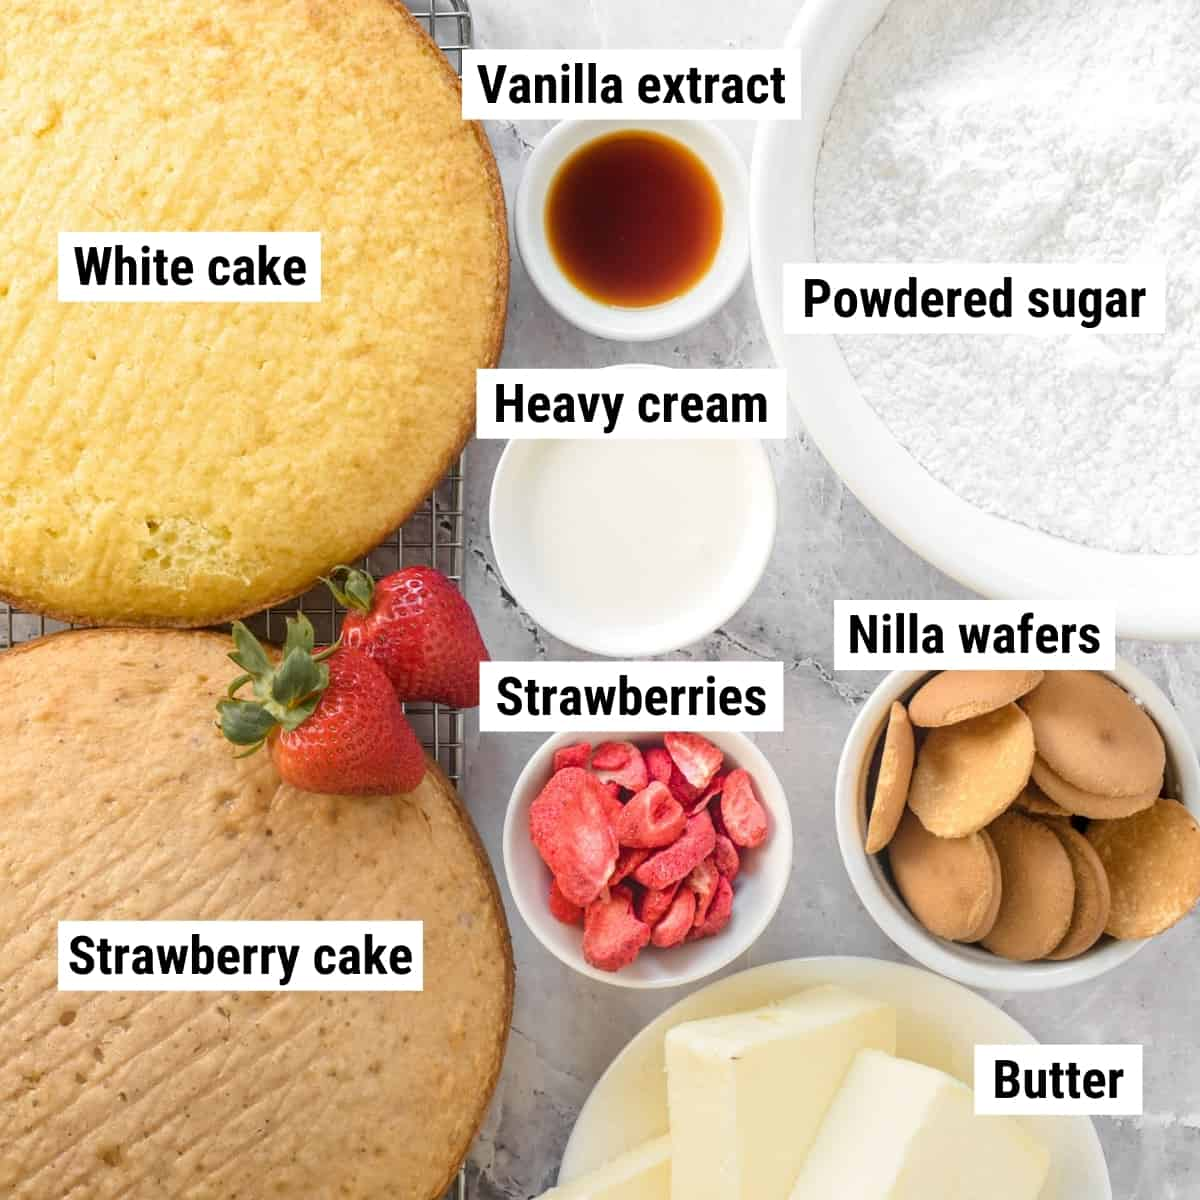 The ingredients for strawberry crunch cake laid out on a table.